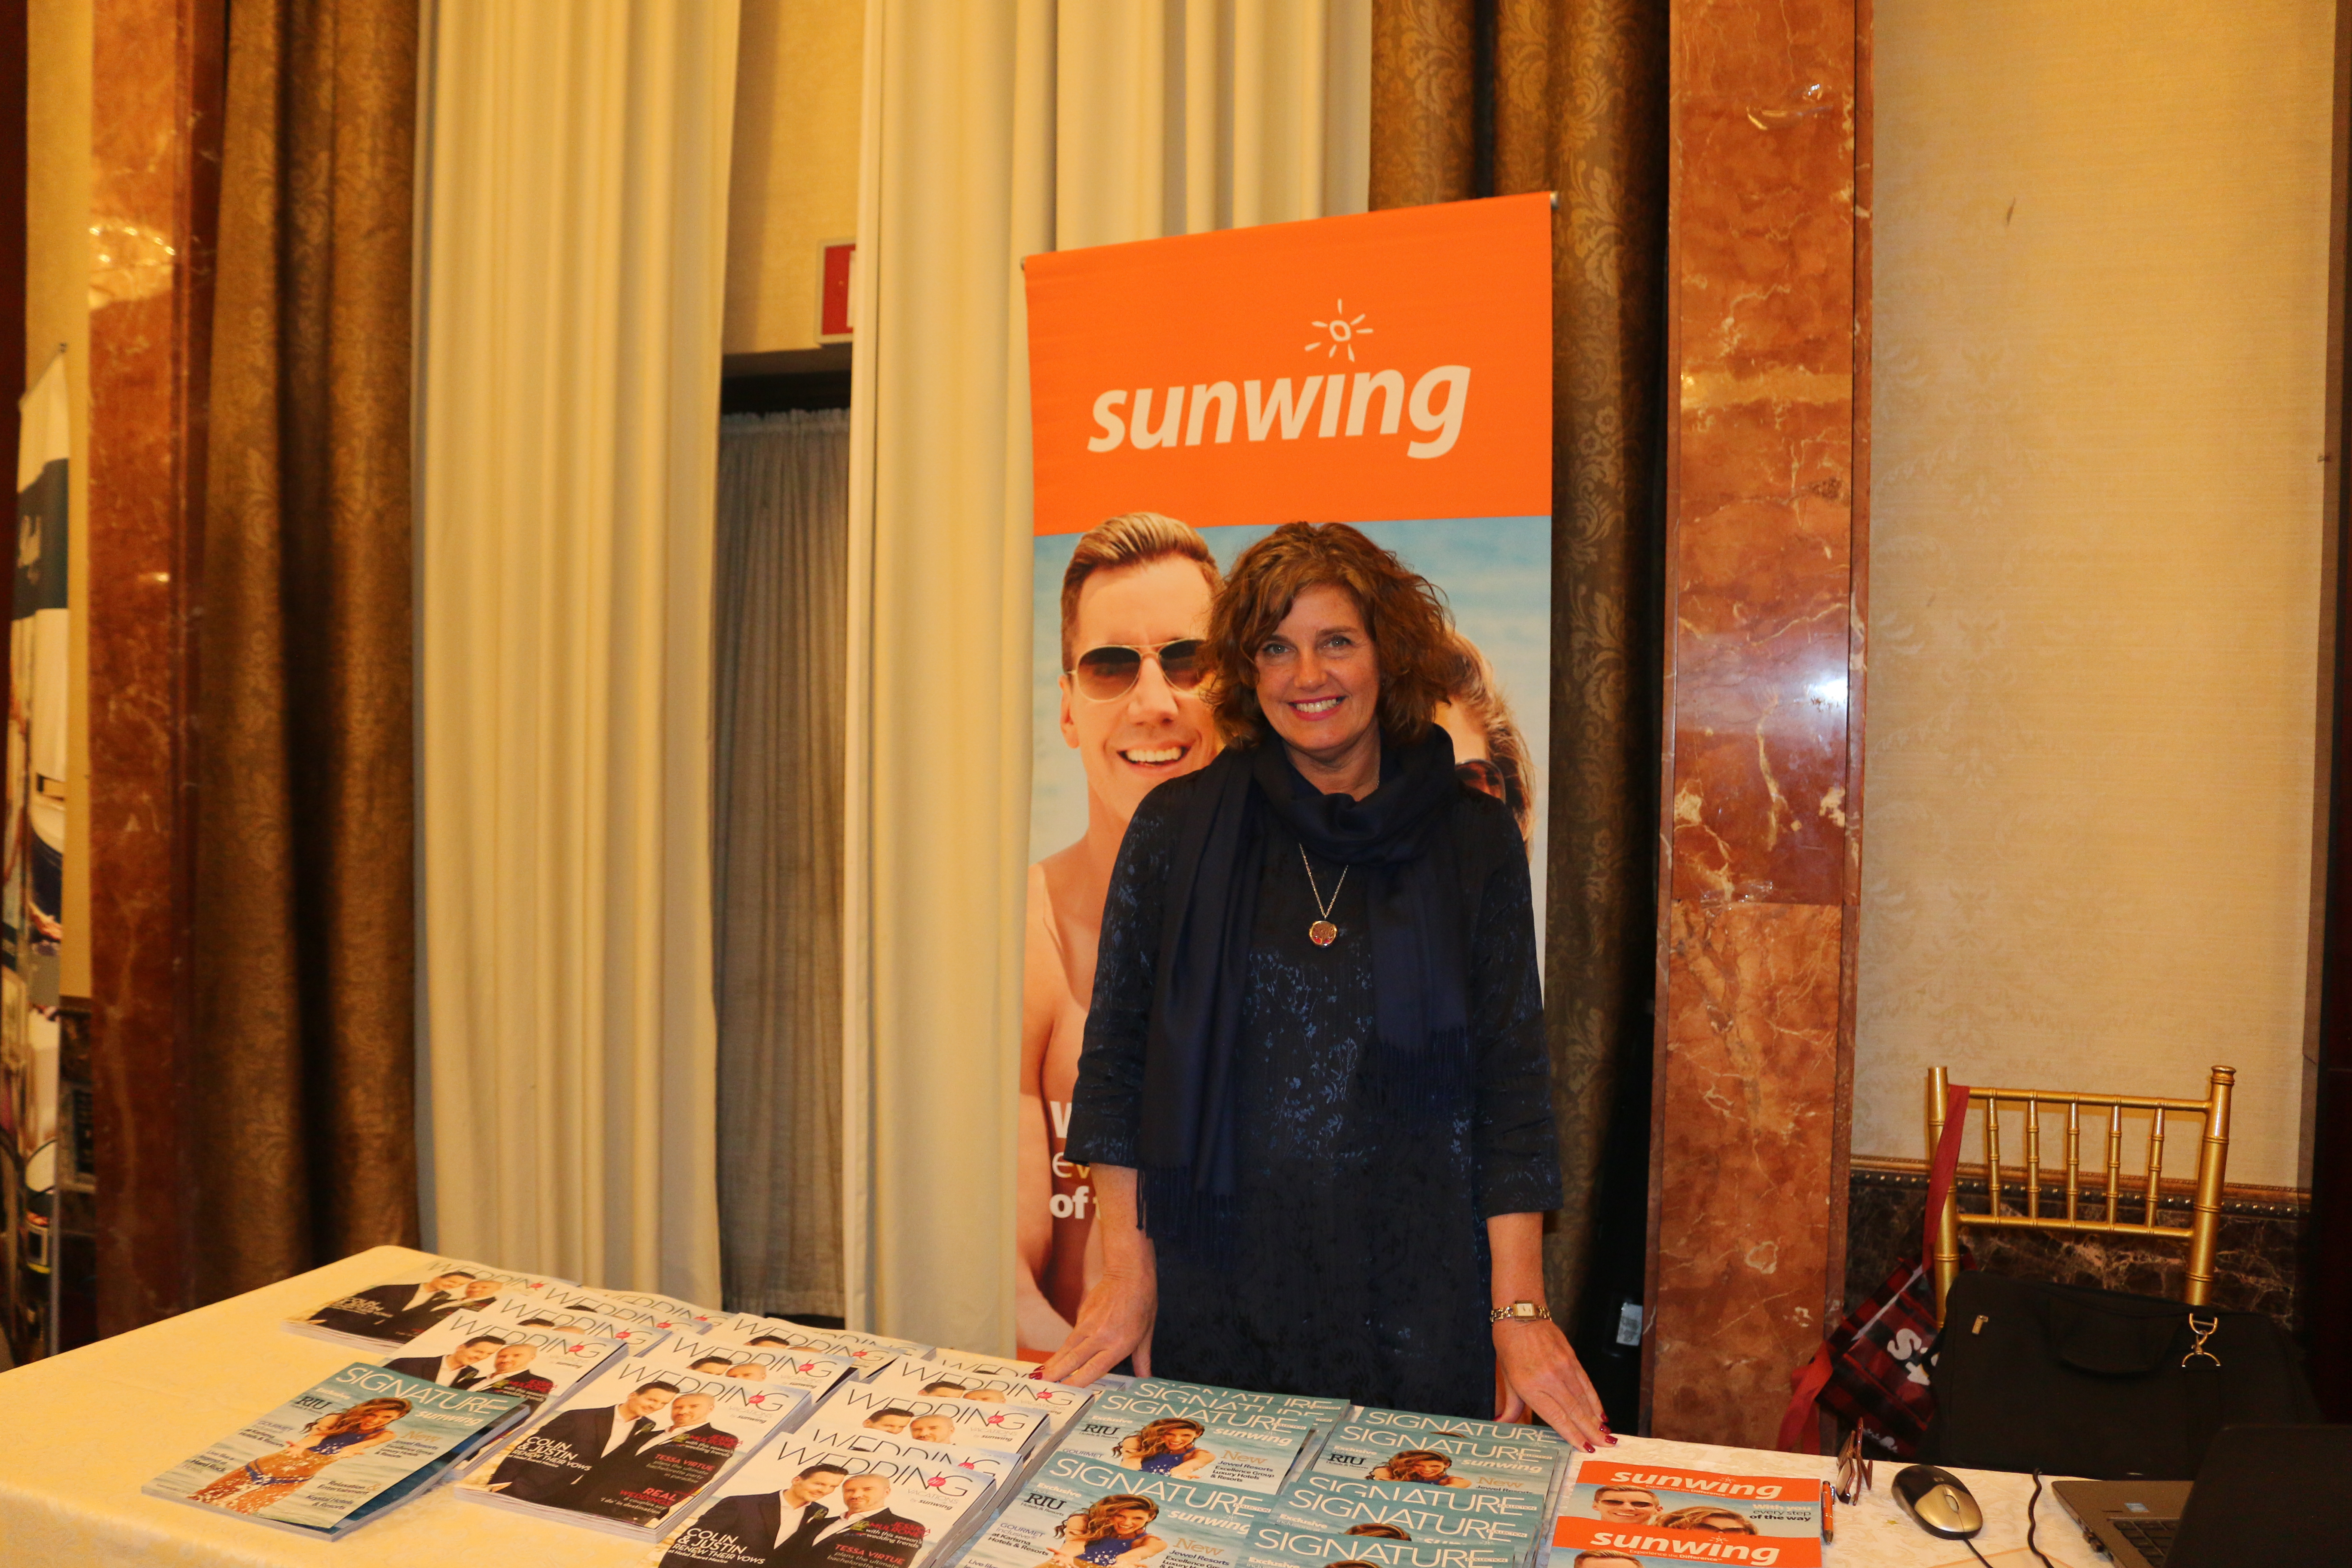 Lorraine Brisbois, corporate manager, preferred partners, Sunwing